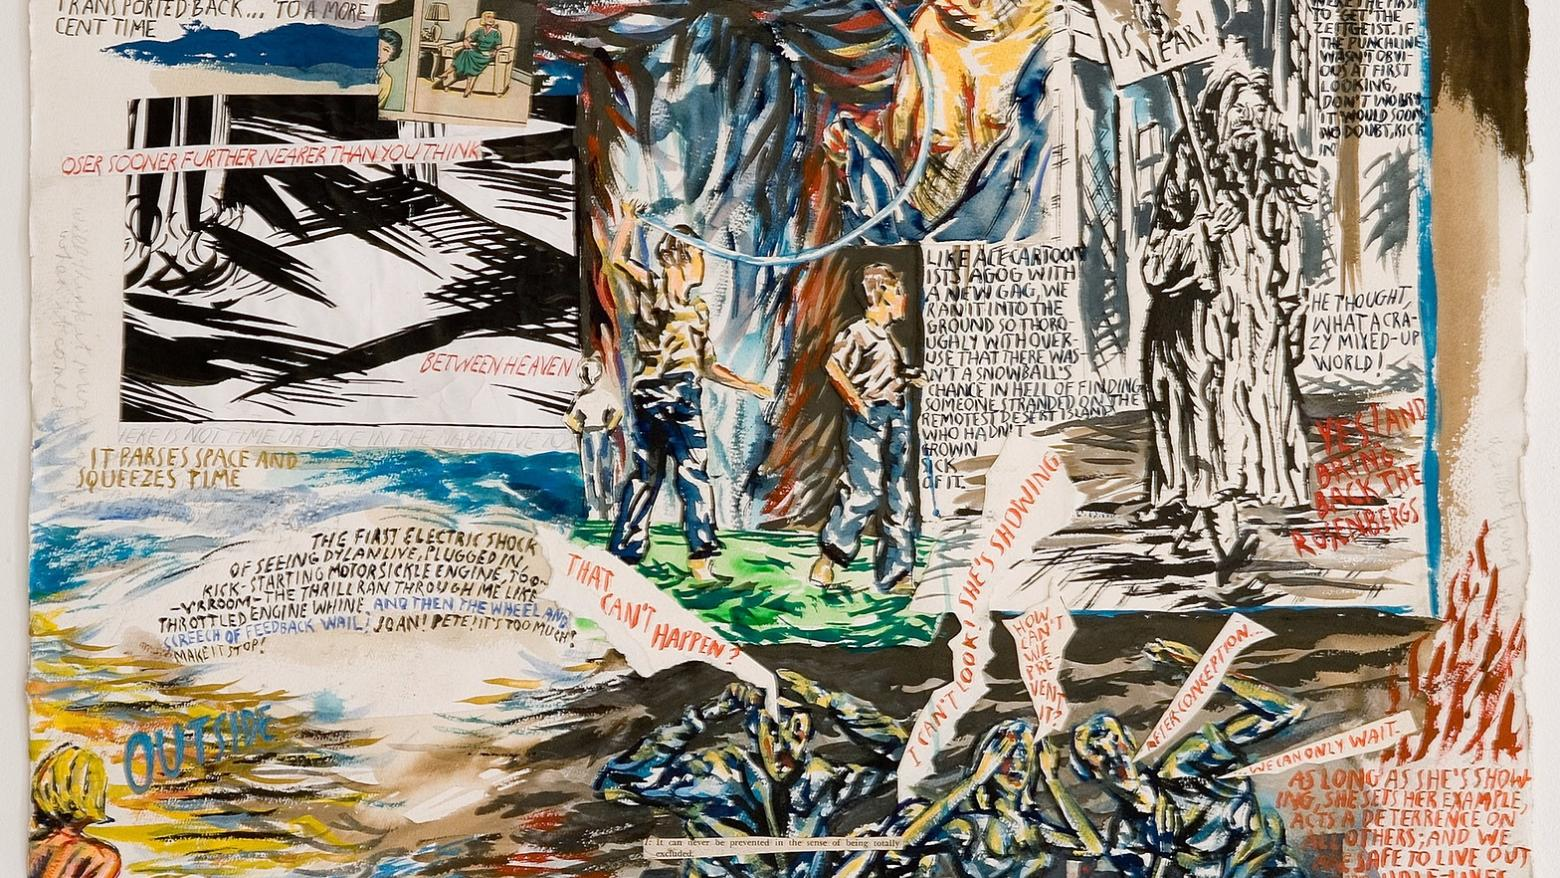 Raymond Pettibon, No Title (When I see), 2006. Pen and ink drawing on paper. 30 1/4 x 22 3/8 in. (76.8 x 56.8 cm). Hammer Museum, Los Angeles. Purchase.